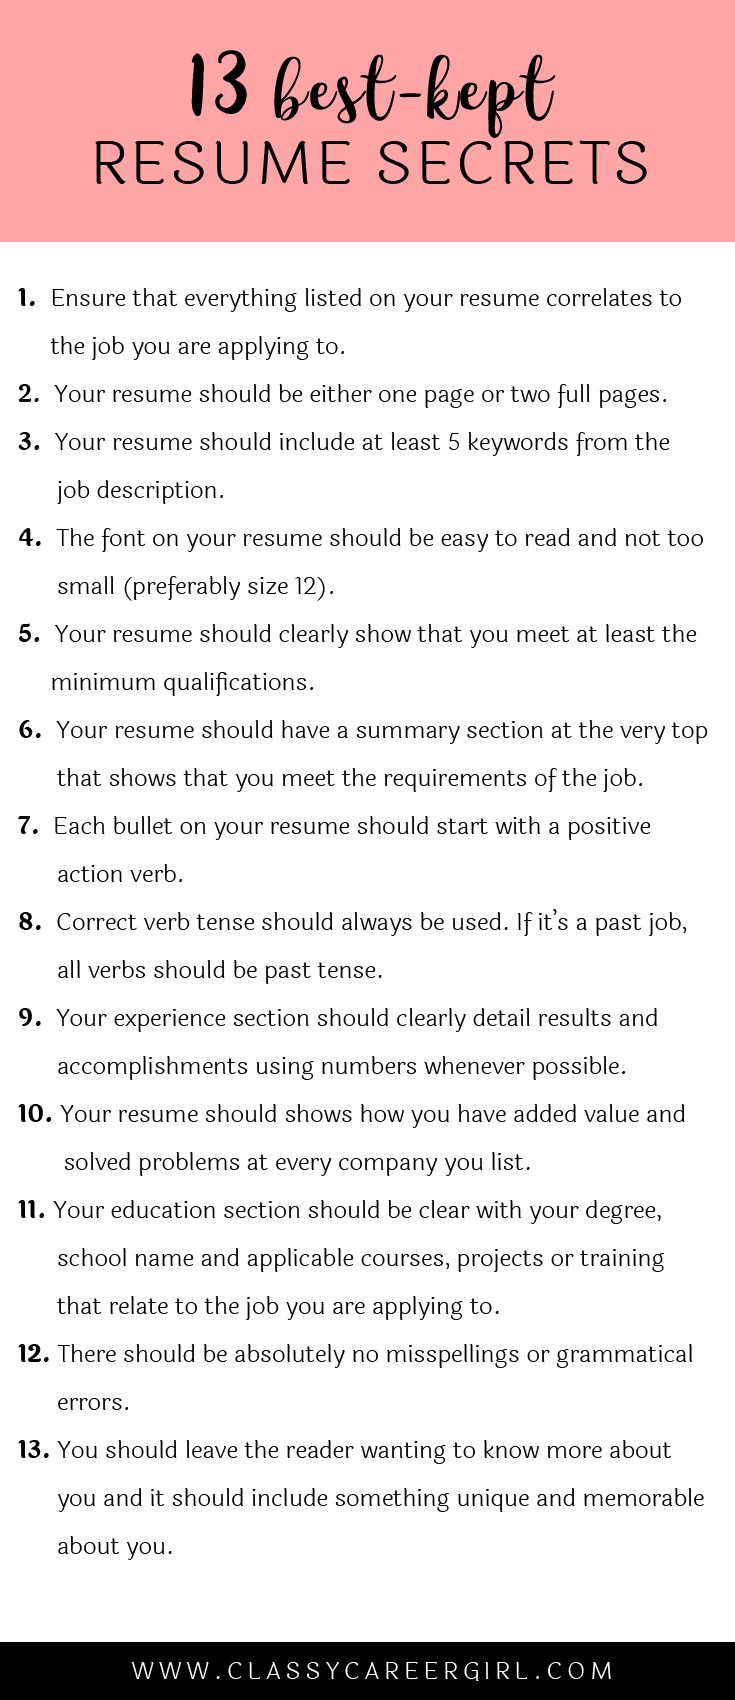 Opposenewapstandardsus  Unusual  Ideas About Resume On Pinterest  Cv Format Resume  With Remarkable Some Hiring Managers Will Toss Your Resume Out If You Dont Know These  With Nice Mckinsey Resume Also Medical Student Resume In Addition Resume Chronological Order And Resume Software Engineer As Well As Veterinary Assistant Resume Additionally Chef Resume Template From Pinterestcom With Opposenewapstandardsus  Remarkable  Ideas About Resume On Pinterest  Cv Format Resume  With Nice Some Hiring Managers Will Toss Your Resume Out If You Dont Know These  And Unusual Mckinsey Resume Also Medical Student Resume In Addition Resume Chronological Order From Pinterestcom